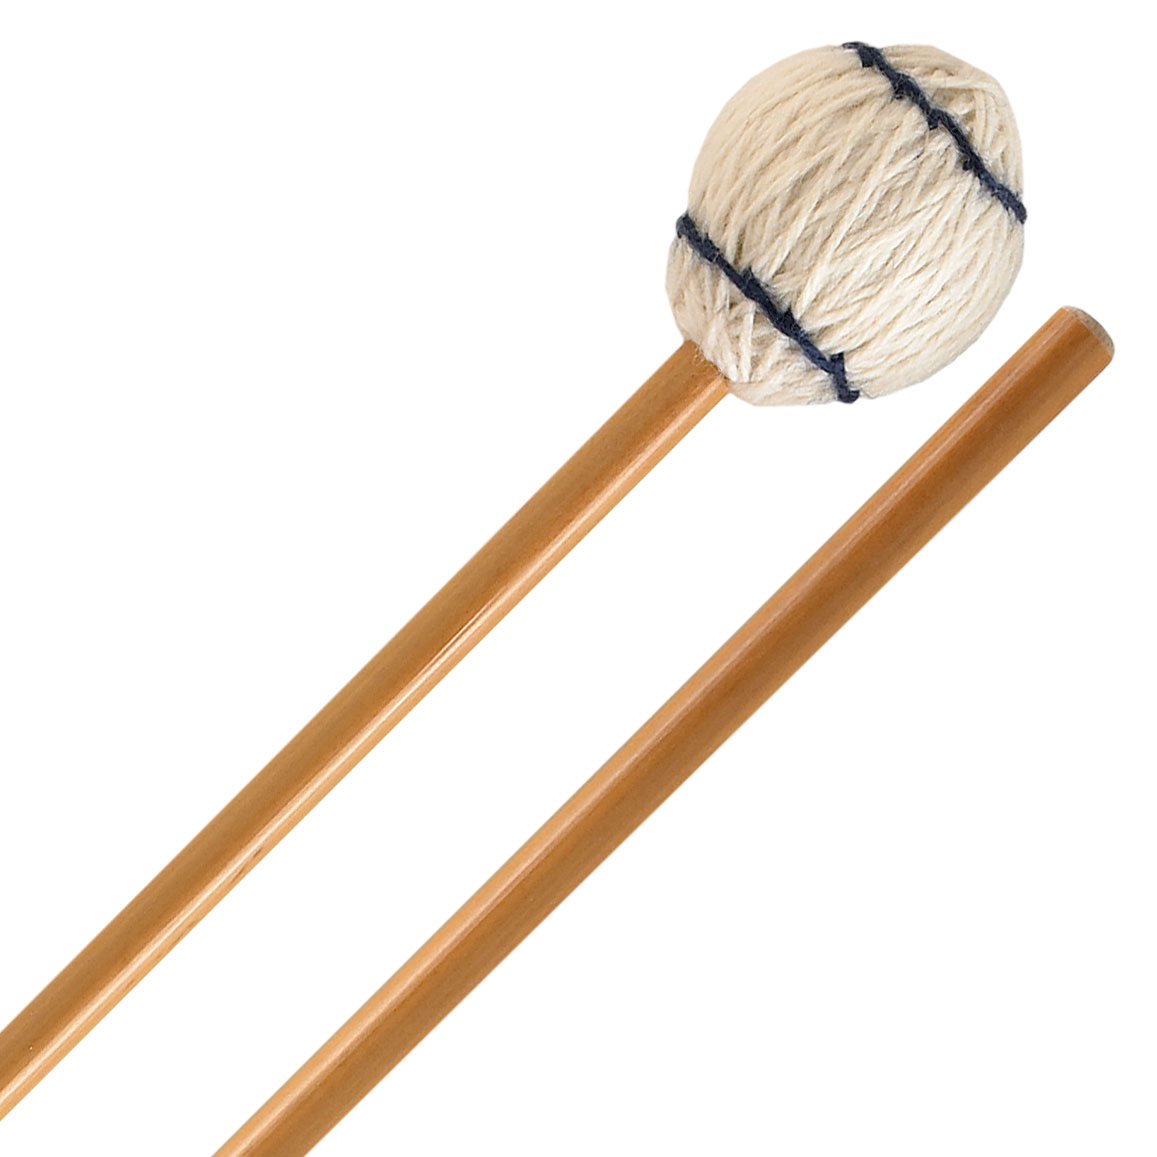 Innovative Percussion Ludwig Albert Signature Very Soft Marimba Mallets with Rattan Shafts